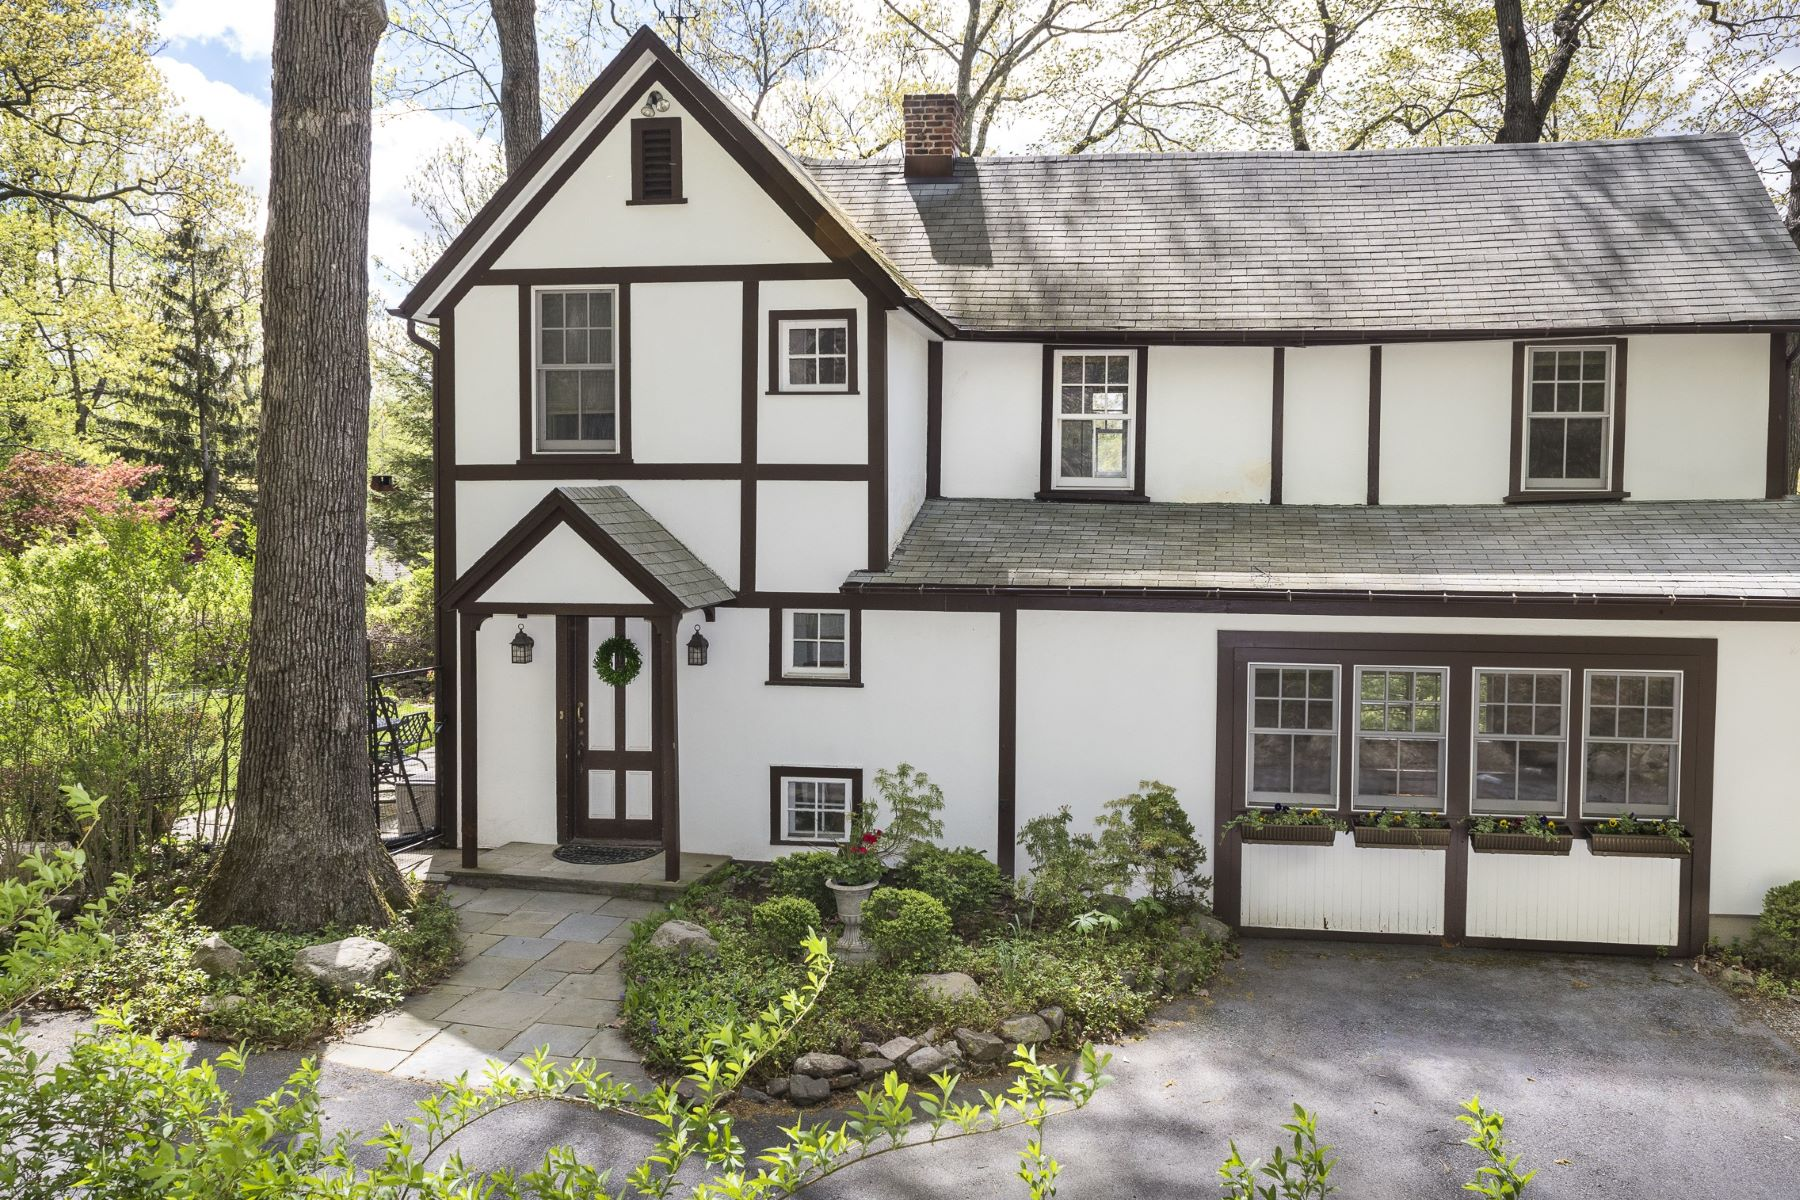 Single Family Home for Sale at English Cottage 2 Stable Road, Tuxedo Park, New York, 10987 United States